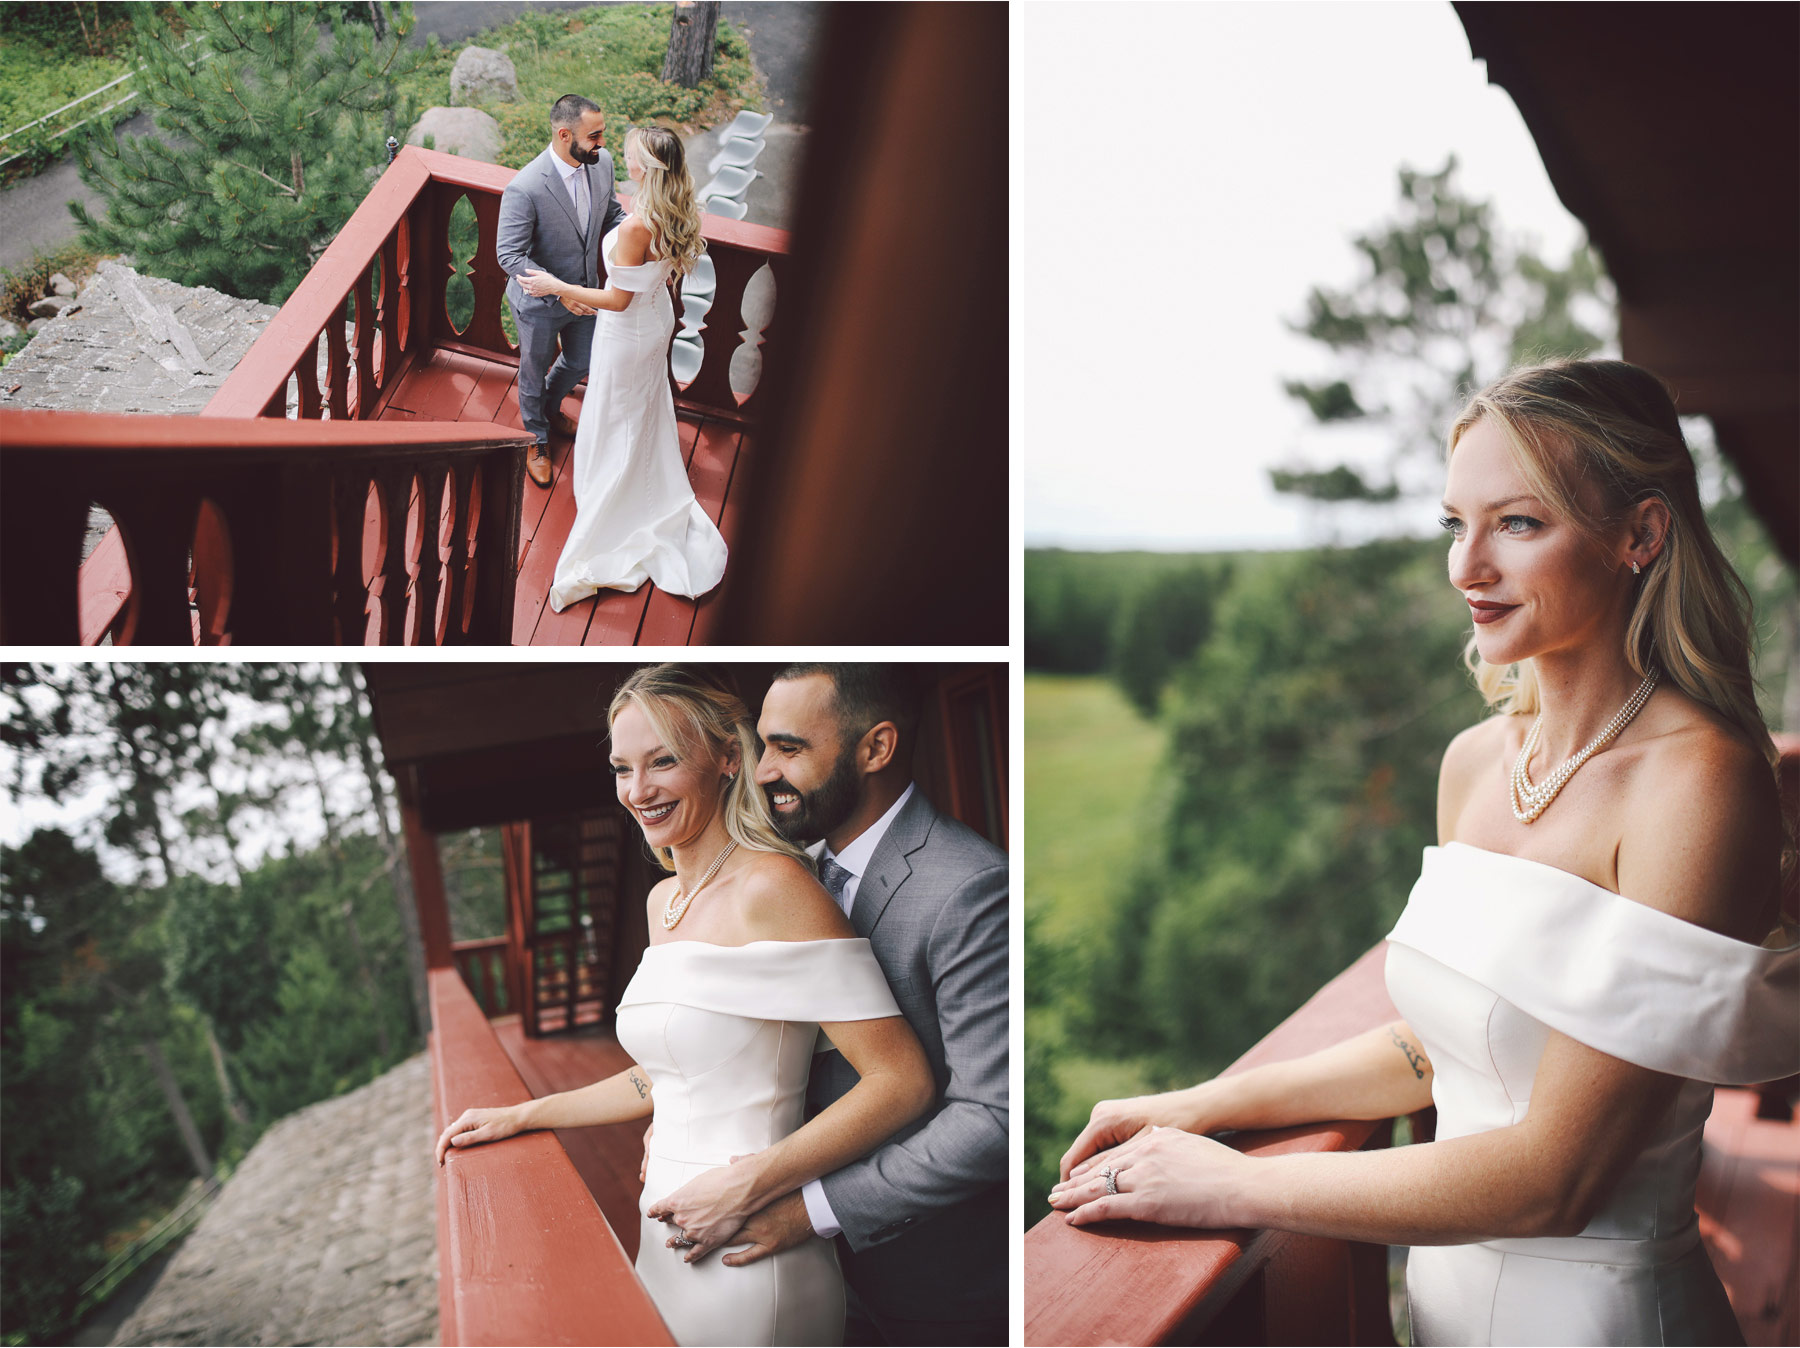 06-Ely-Minnesota-North-Wedding-by-Andrew-Vick-Photography-Bride-Groom-First-Look-Cabin-Woods-Katie-and-Joe.jpg